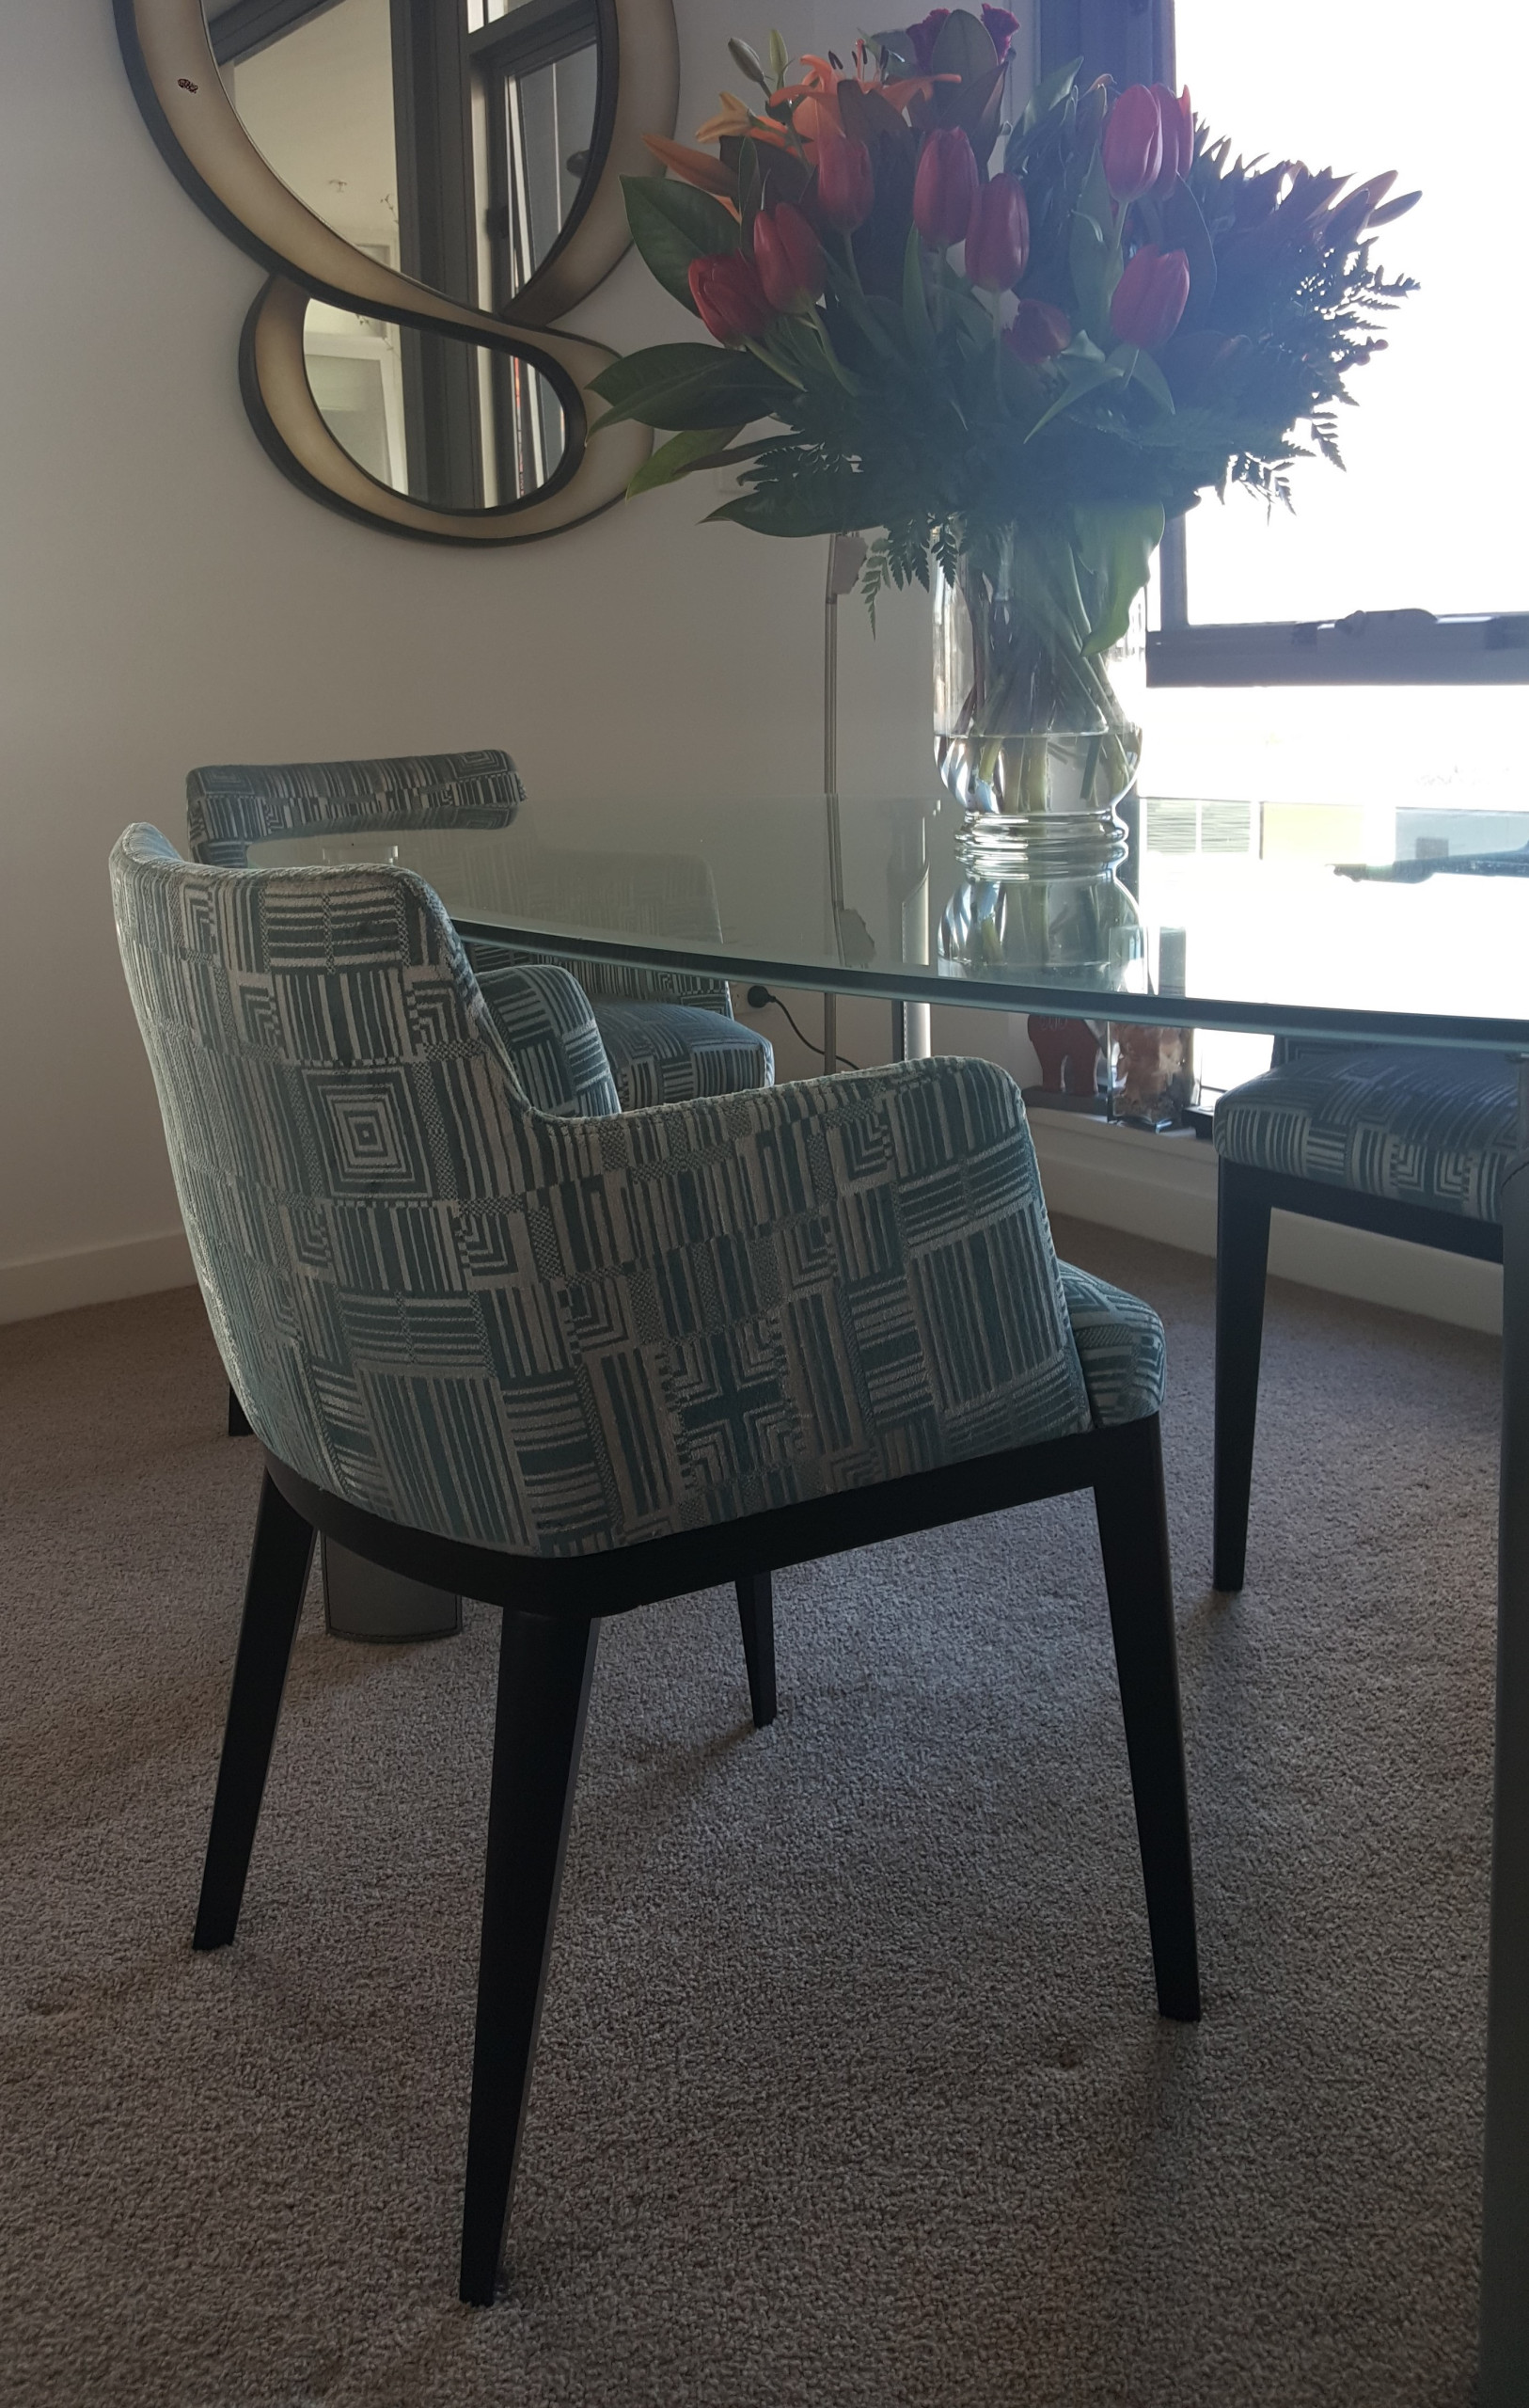 Furniture design and selection